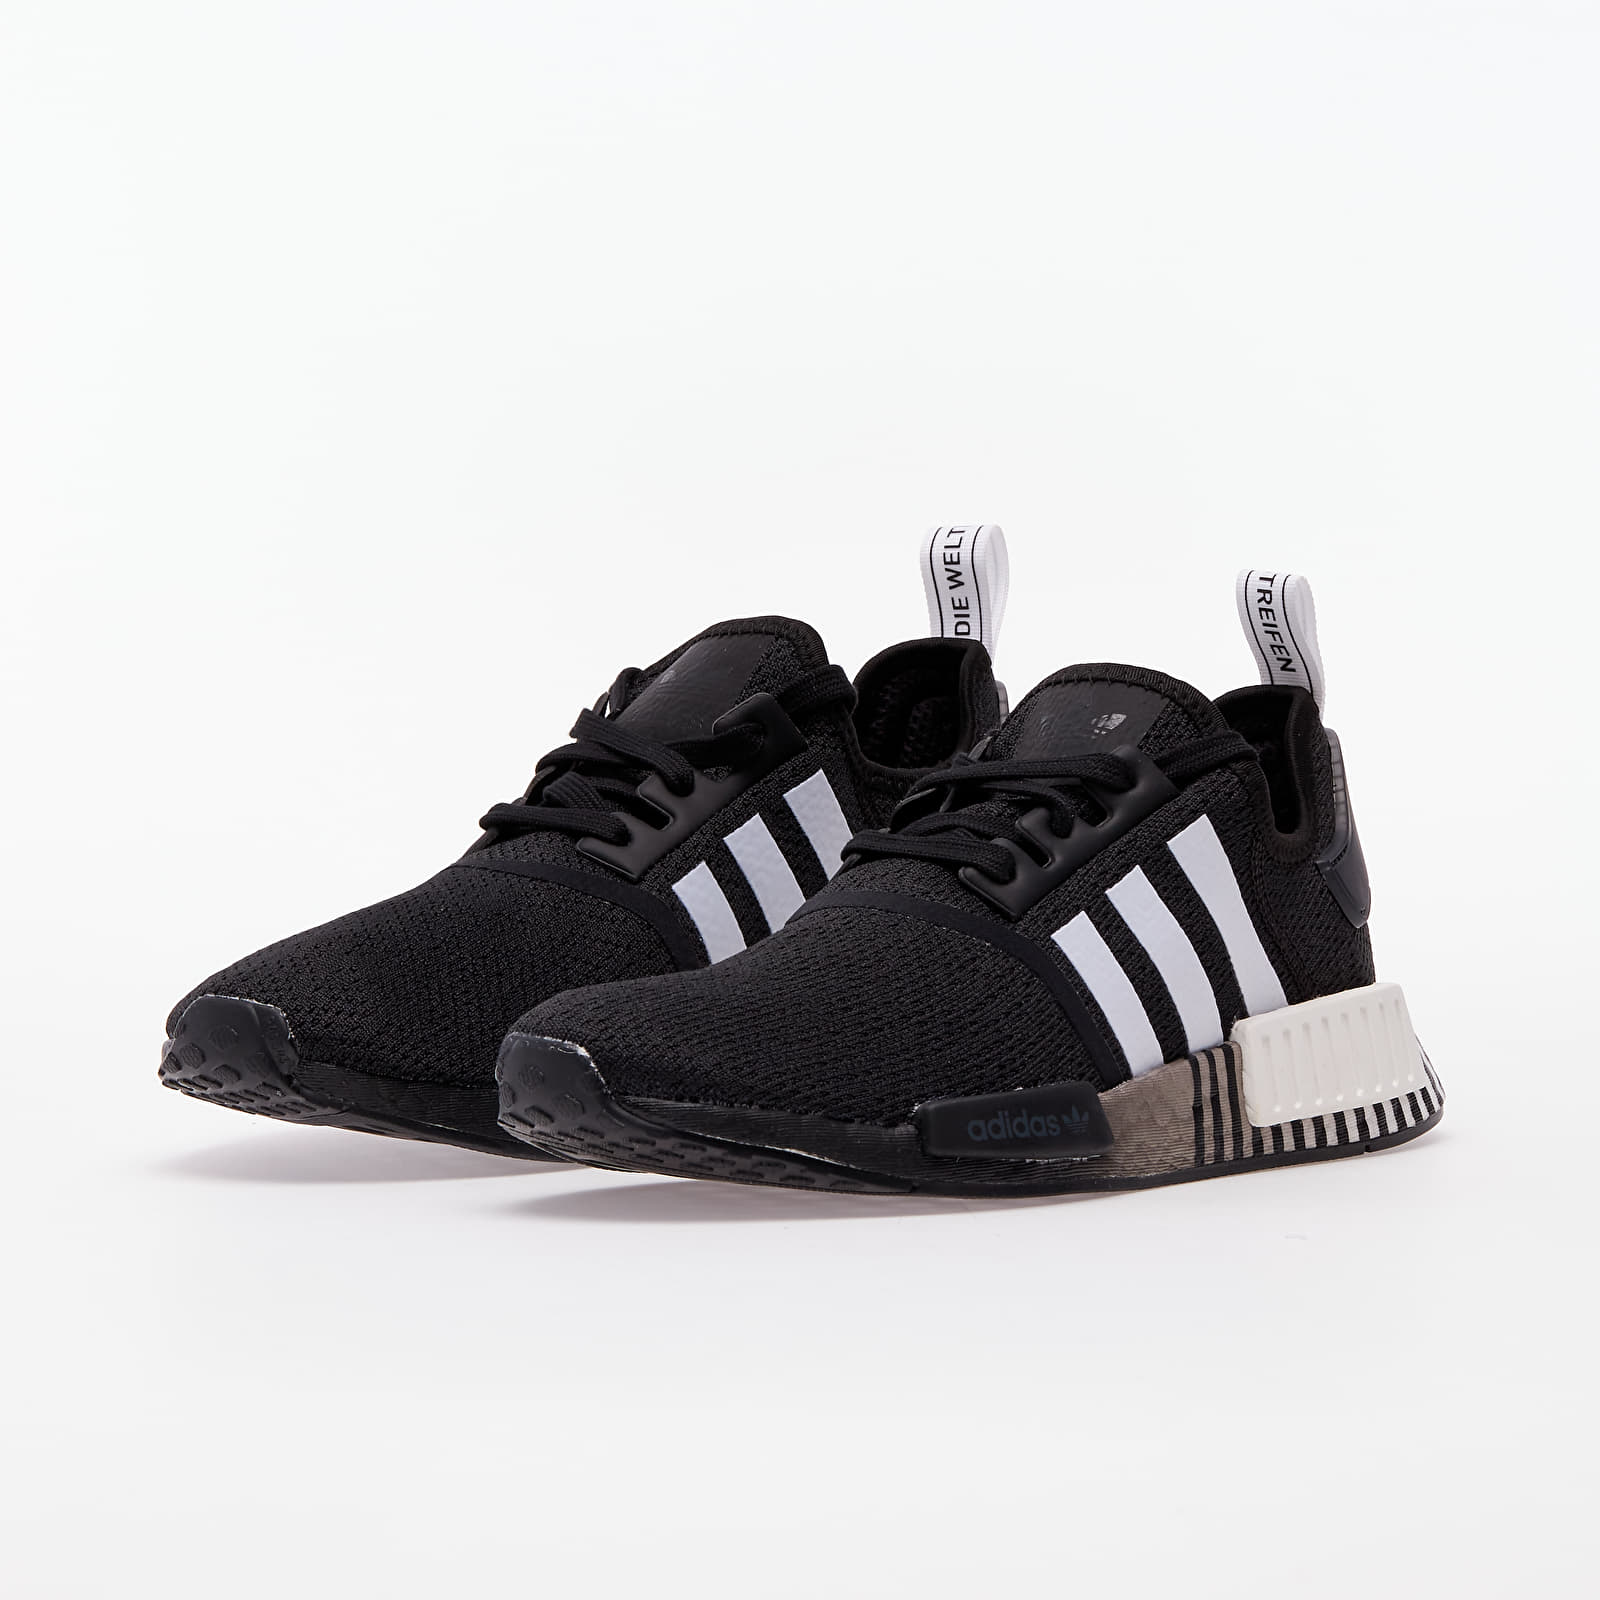 adidas NMD_R1 Core Black/ Ftw White/ Core Black EUR 46